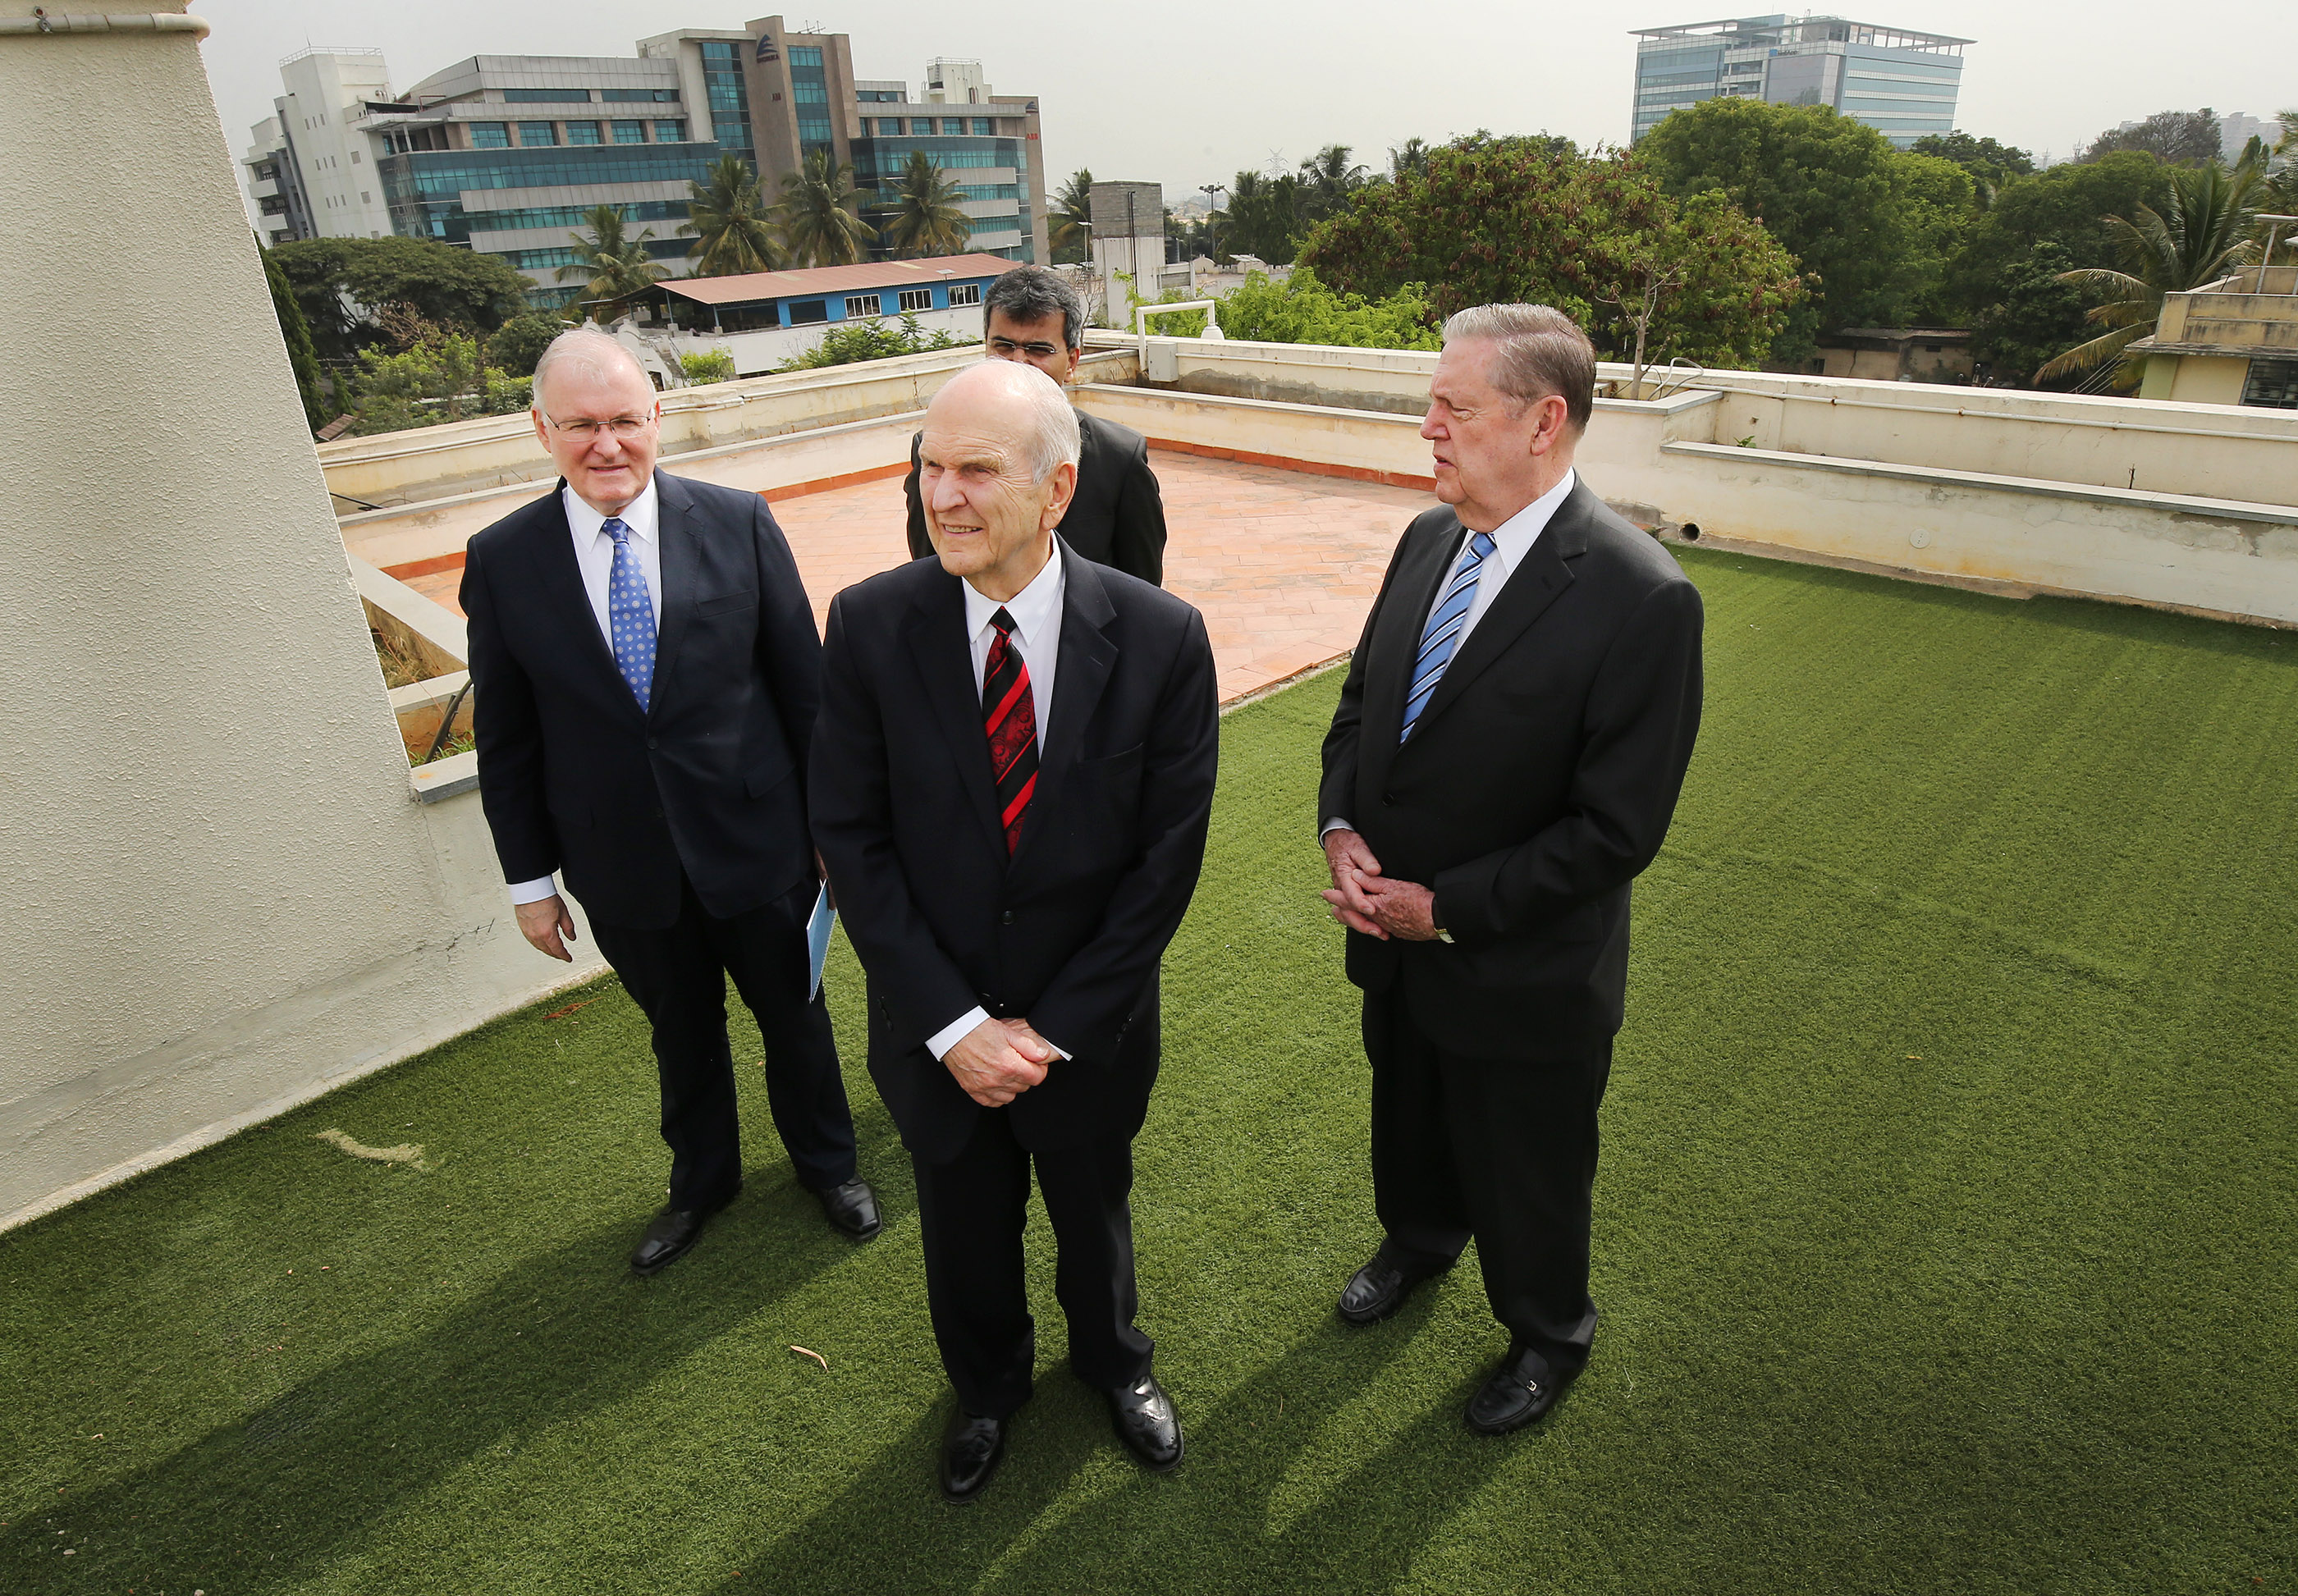 Elder Randy D. Funk, General Authority Seventy; President Russell M. Nelson; Elder Jeffrey R. Holland of the Quorum of the Twelve Apostles; and Elder Robert K. William, an Area Seventy, look over a possible temple site in Bengaluru, India, on Thursday, April 19, 2018.